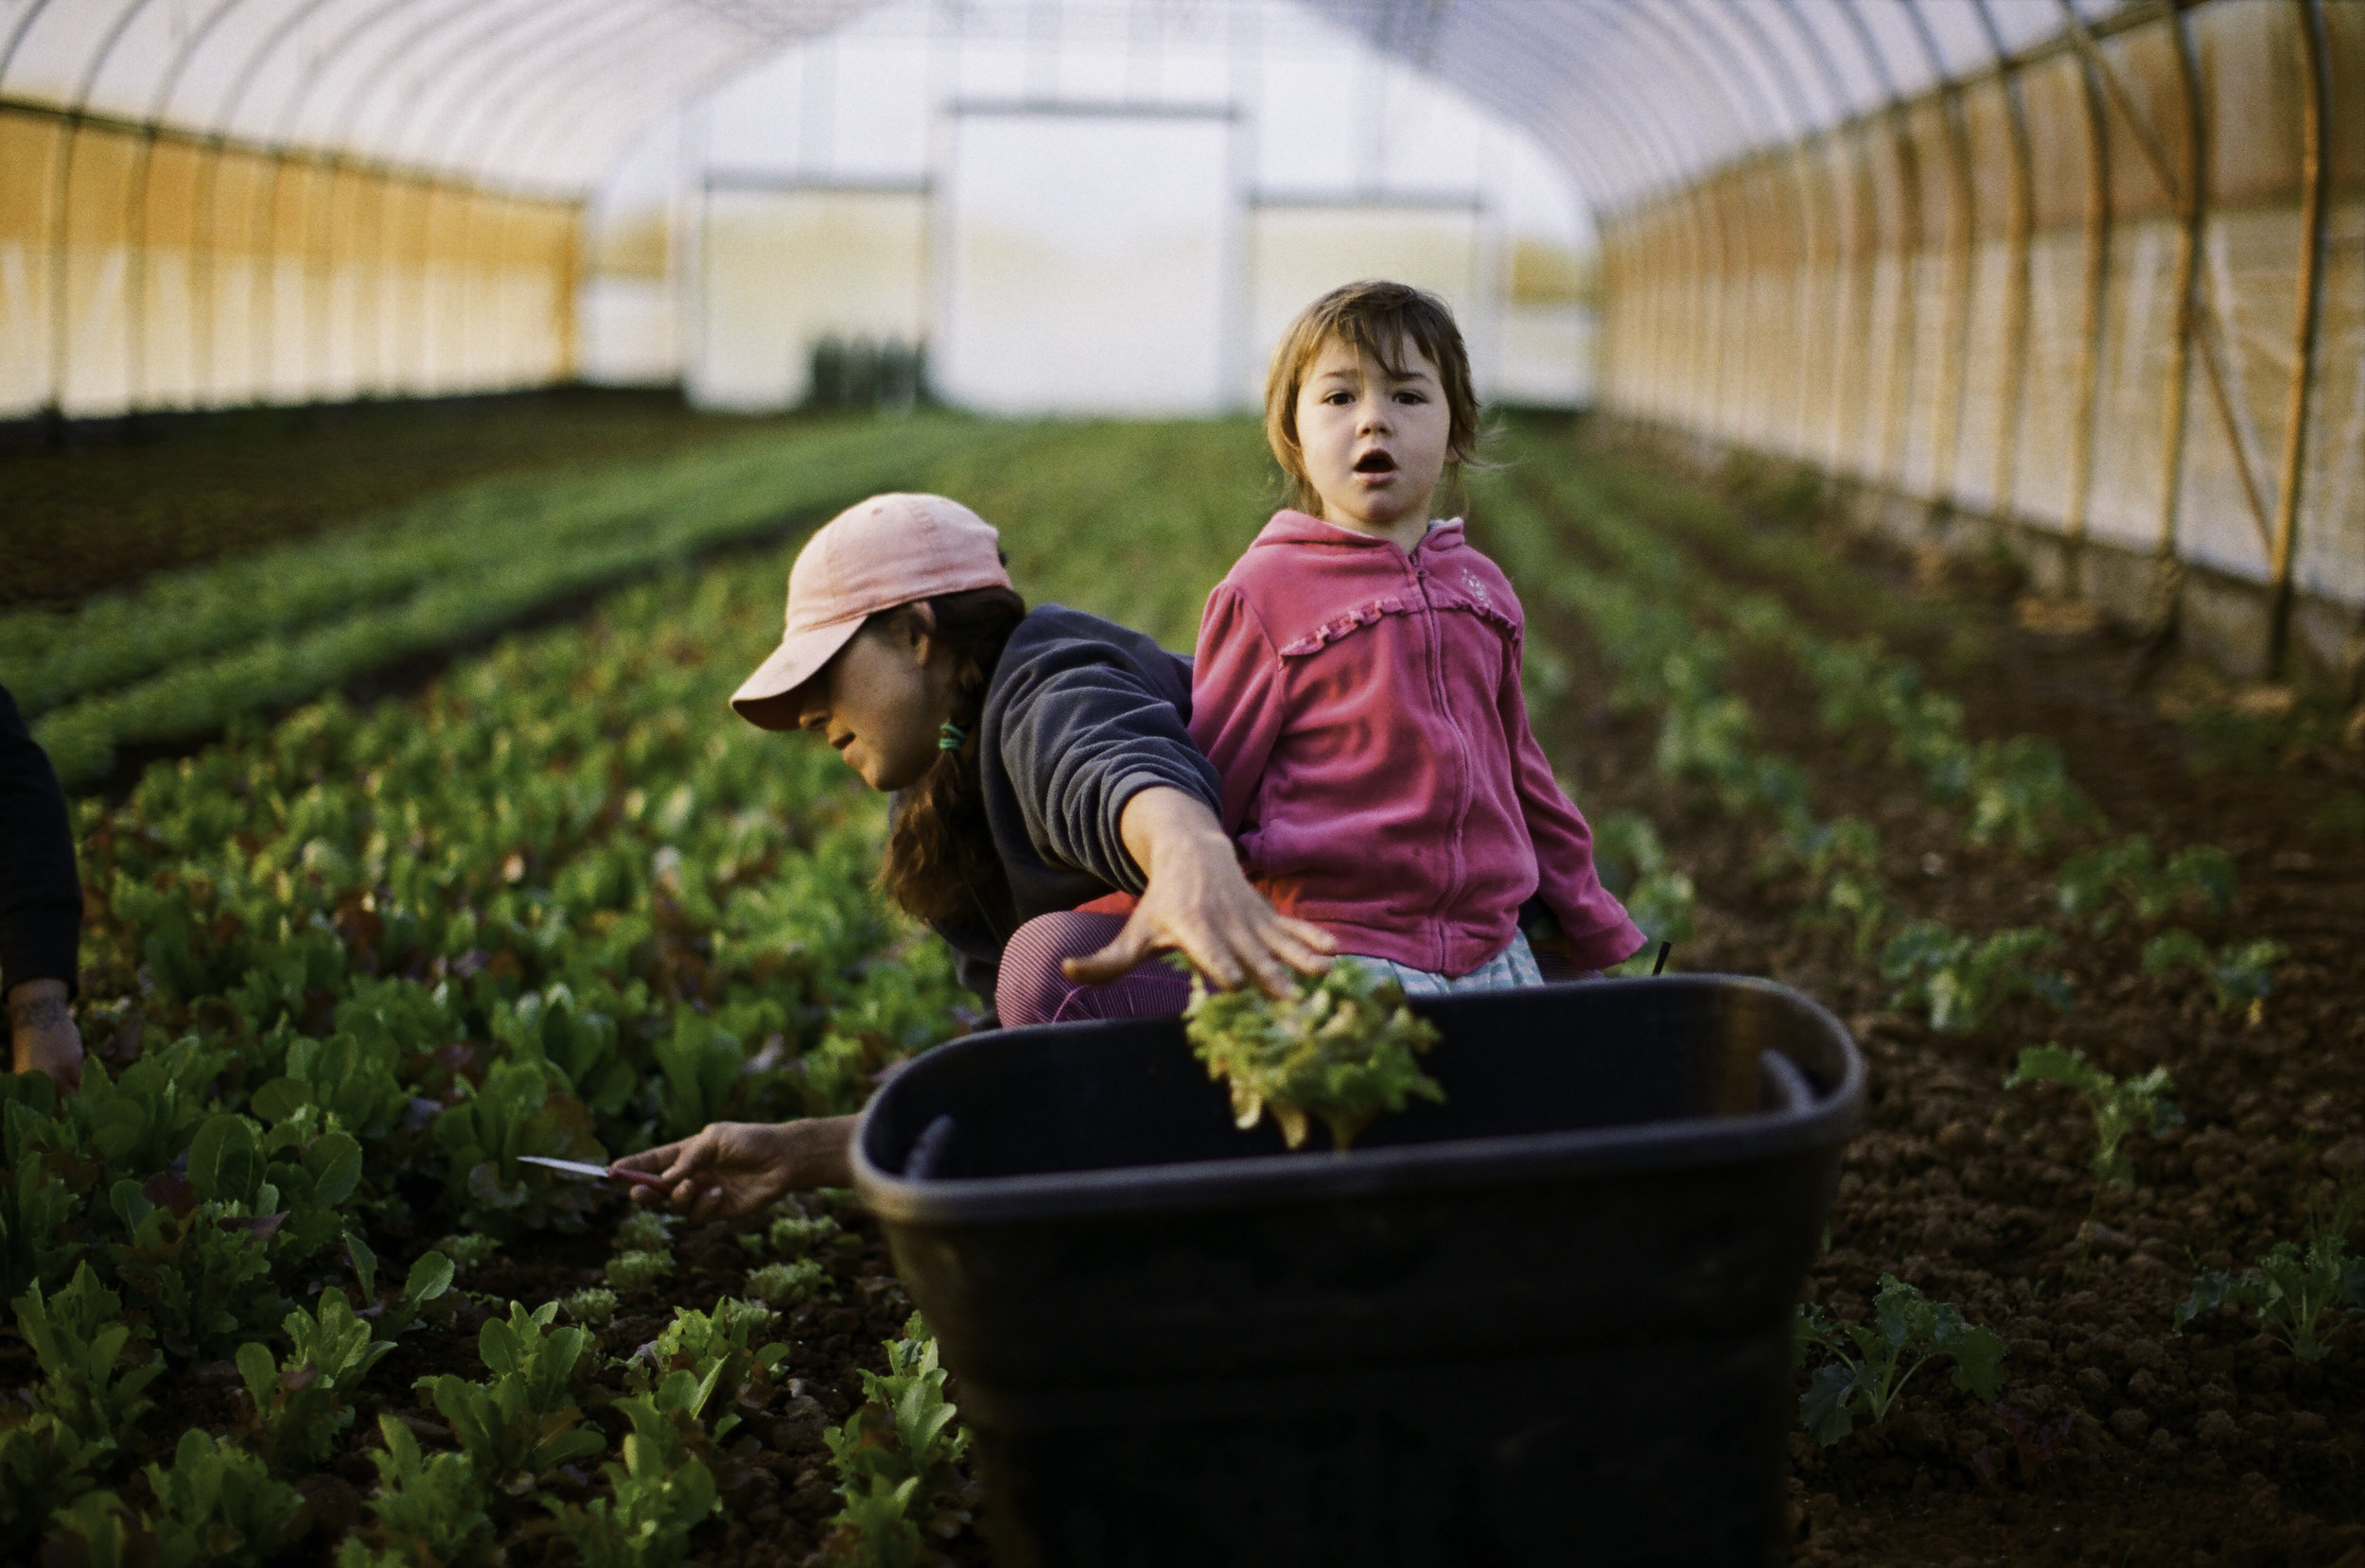 Sunshine and her youngest daughter, Natasha, in a high tunnel harvesting baby lettuce. Their day typically starts at 6:30 AM and goes until 7 to 8 PM.